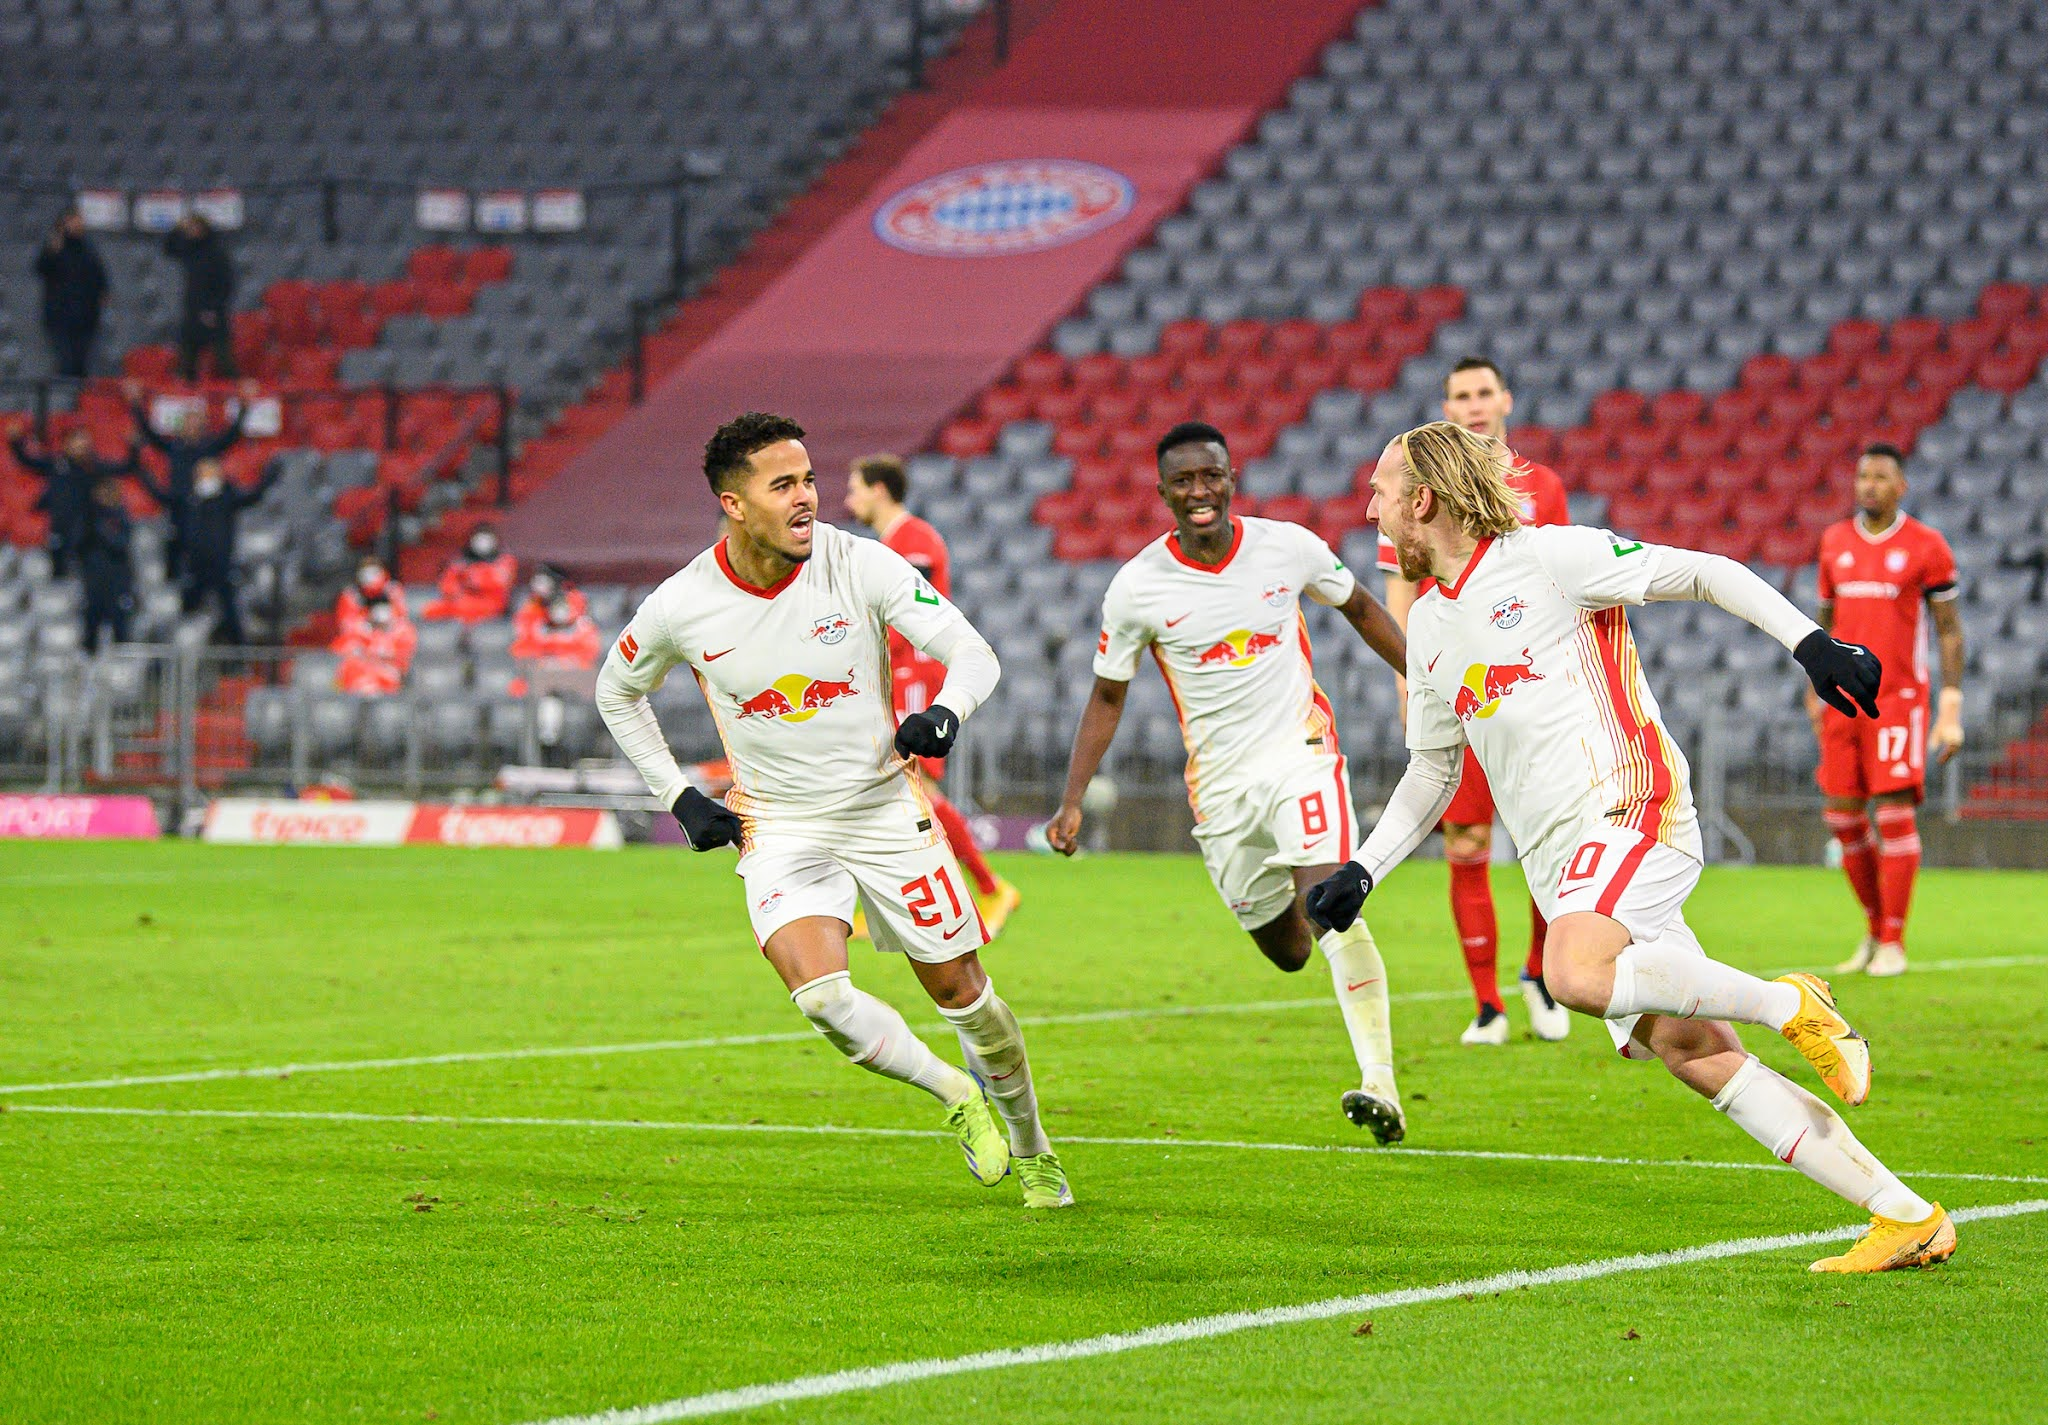 RB Leipzig are gaining momentum in the Bundesliga